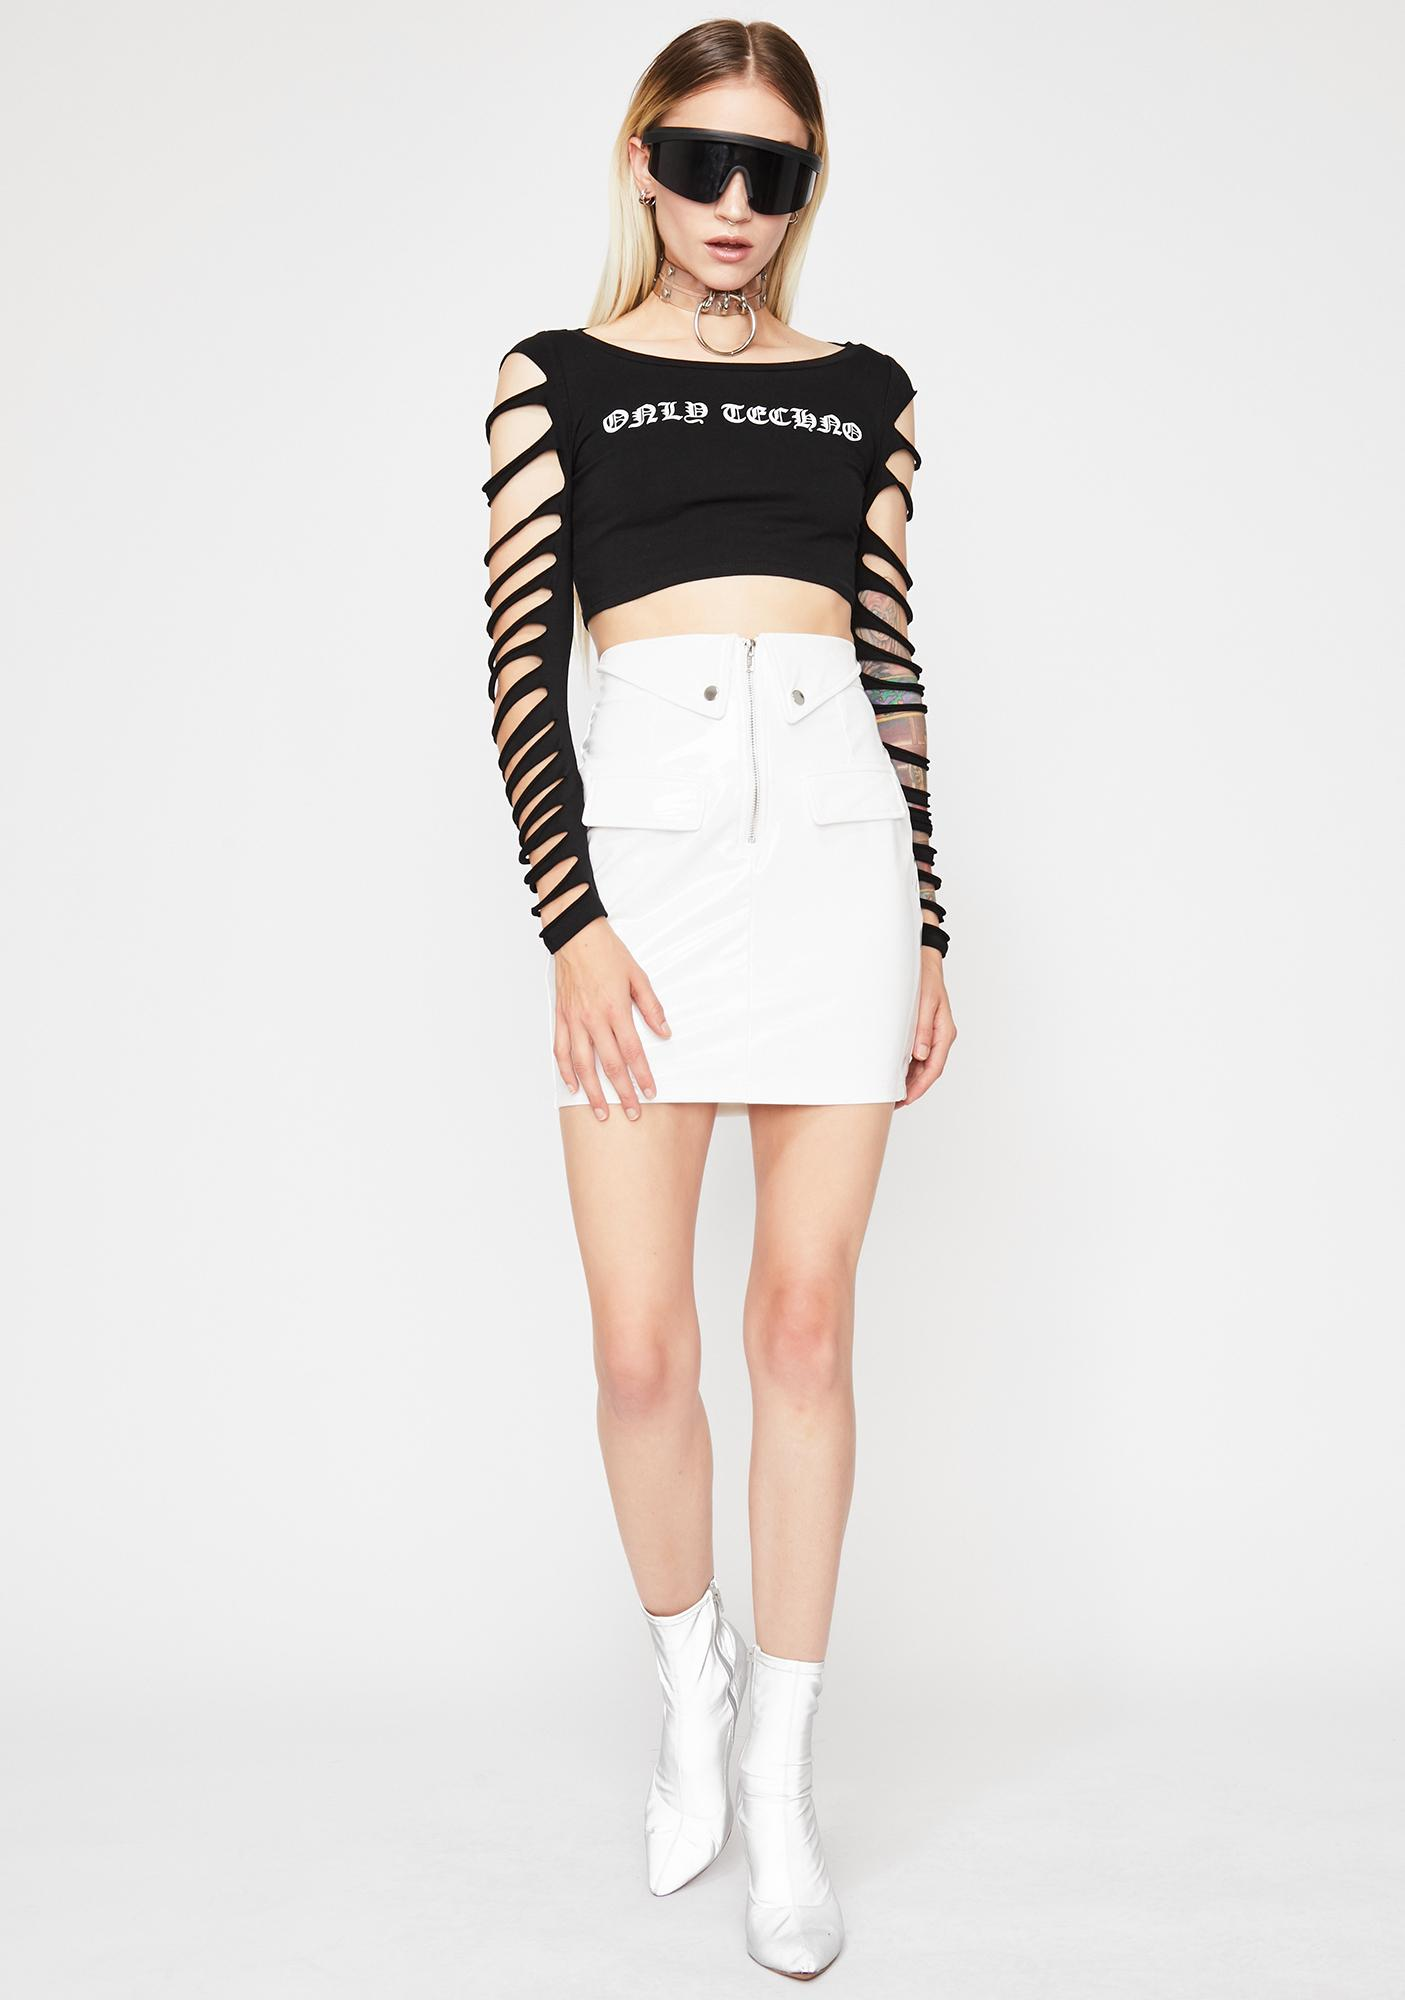 Icy Doll Dilemma Vinyl Skirt